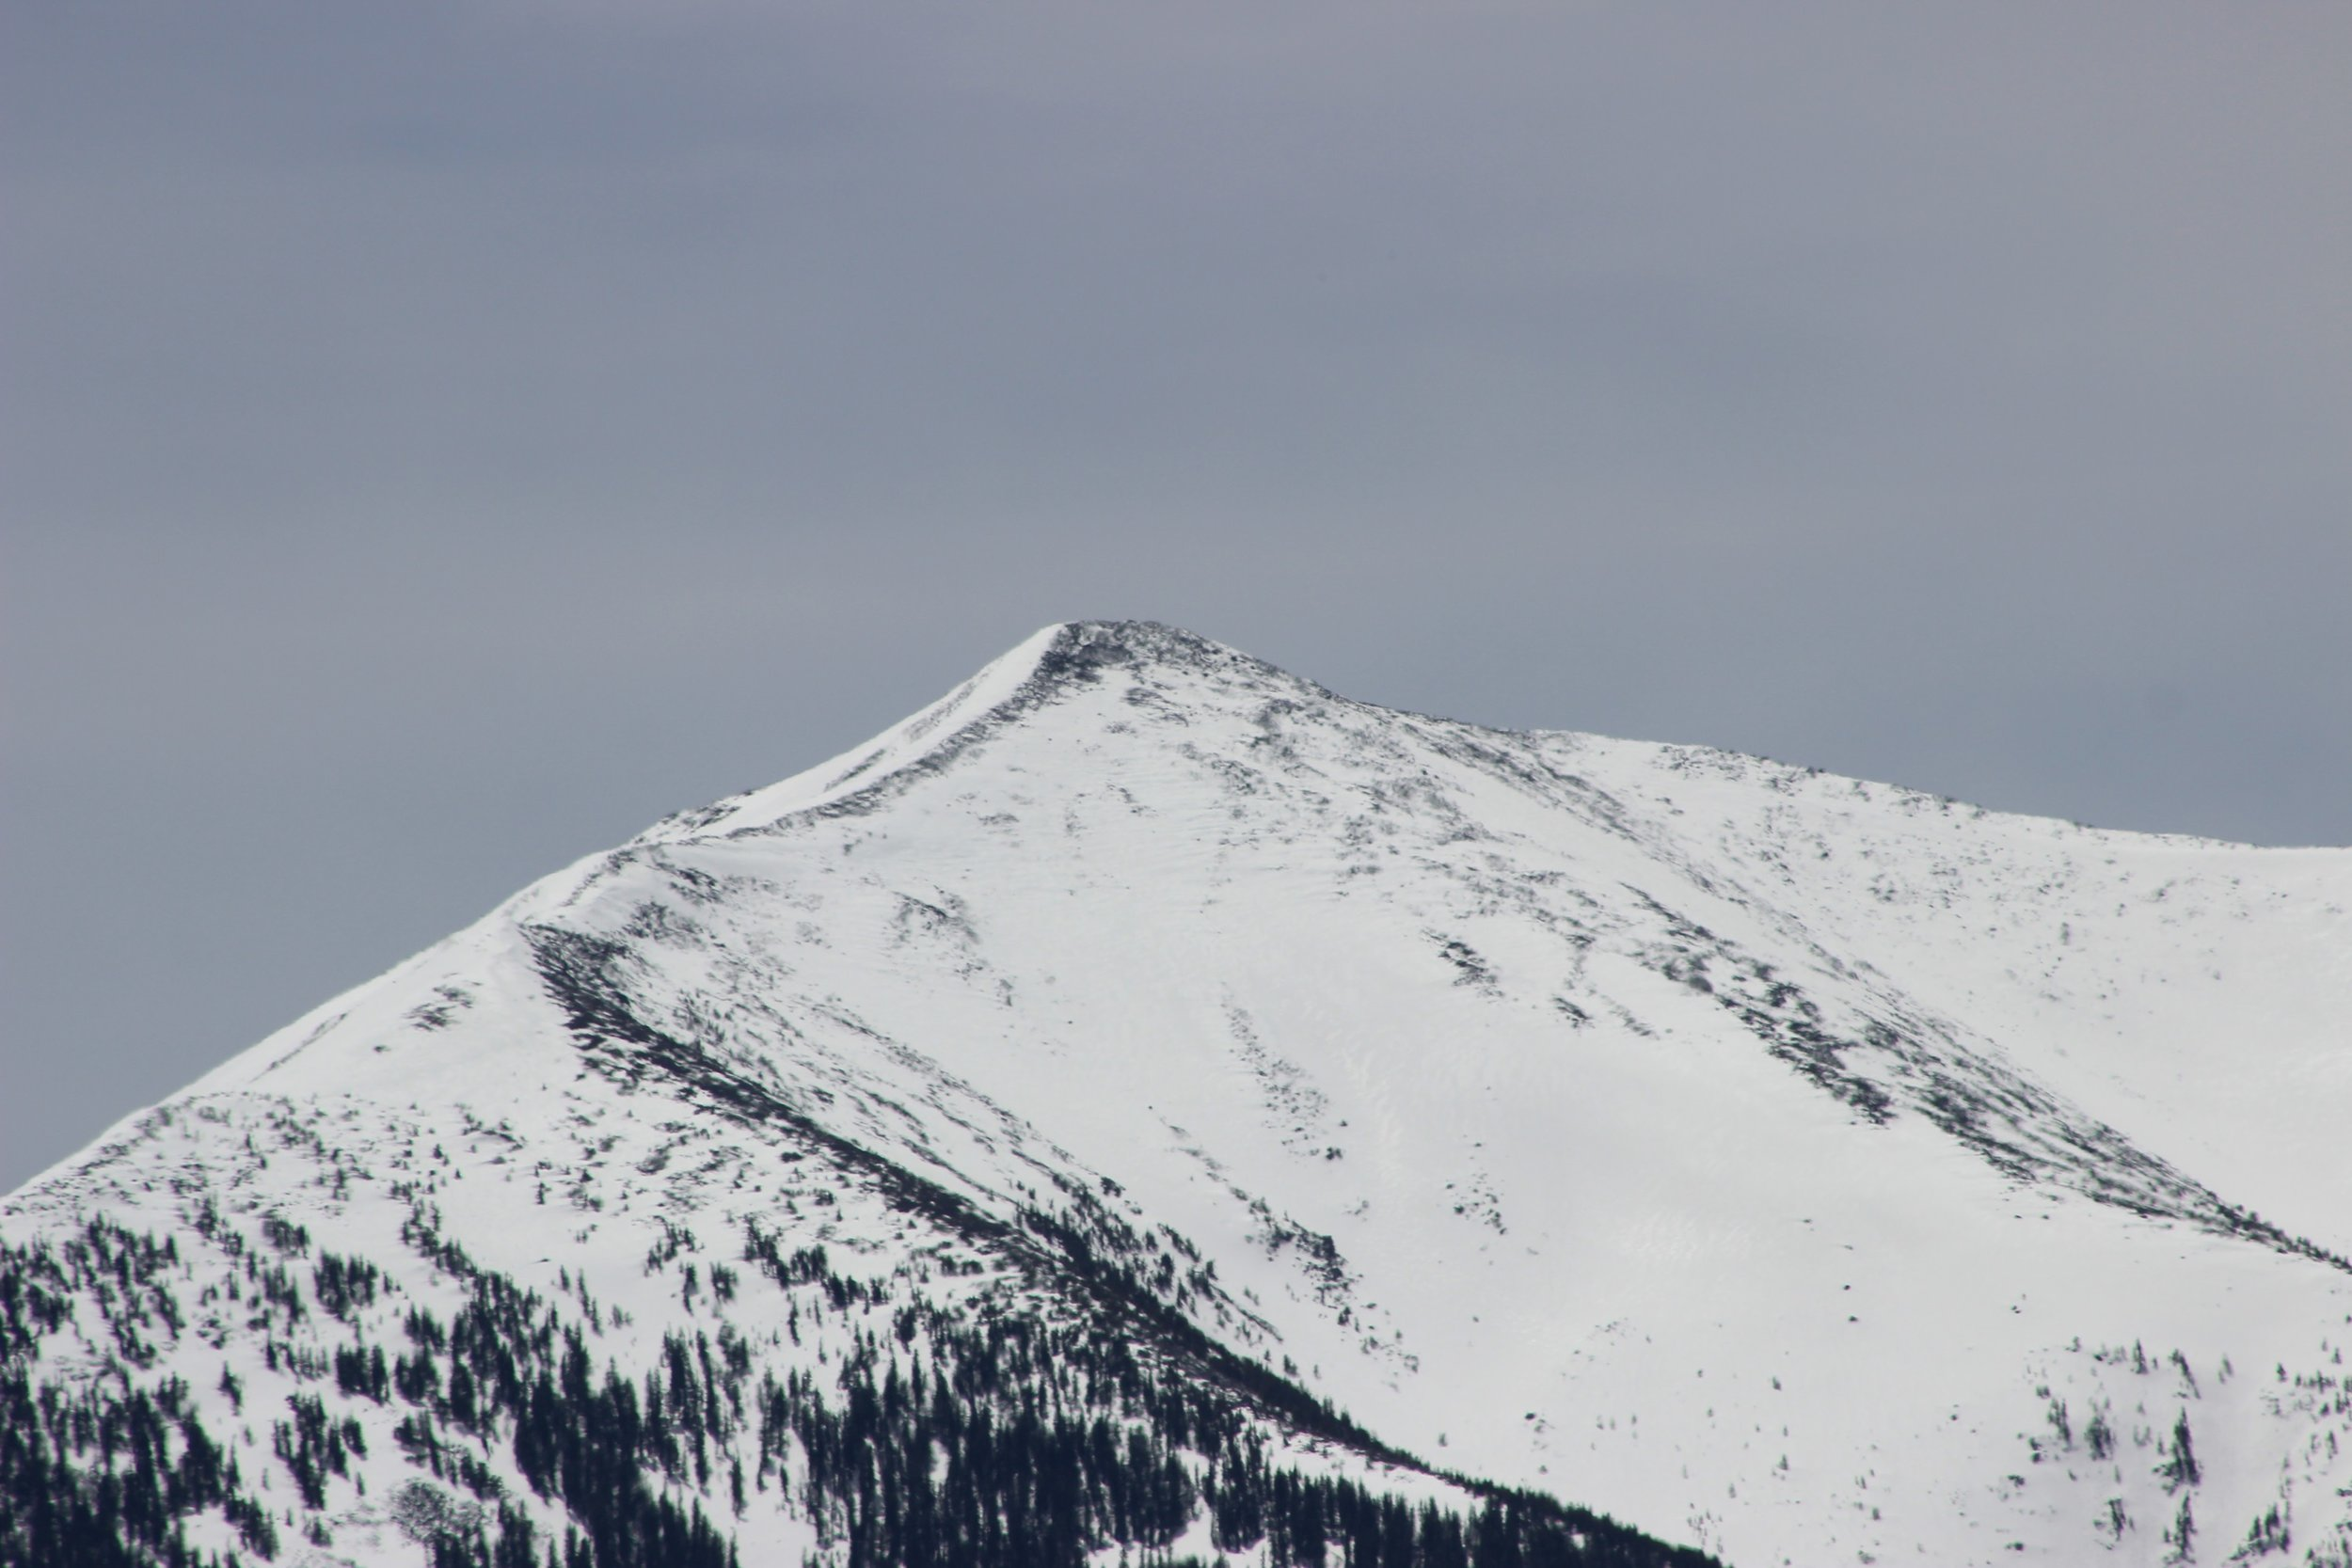 Snowcapped Humphrey's Peak as seen from Kendrick Cabin